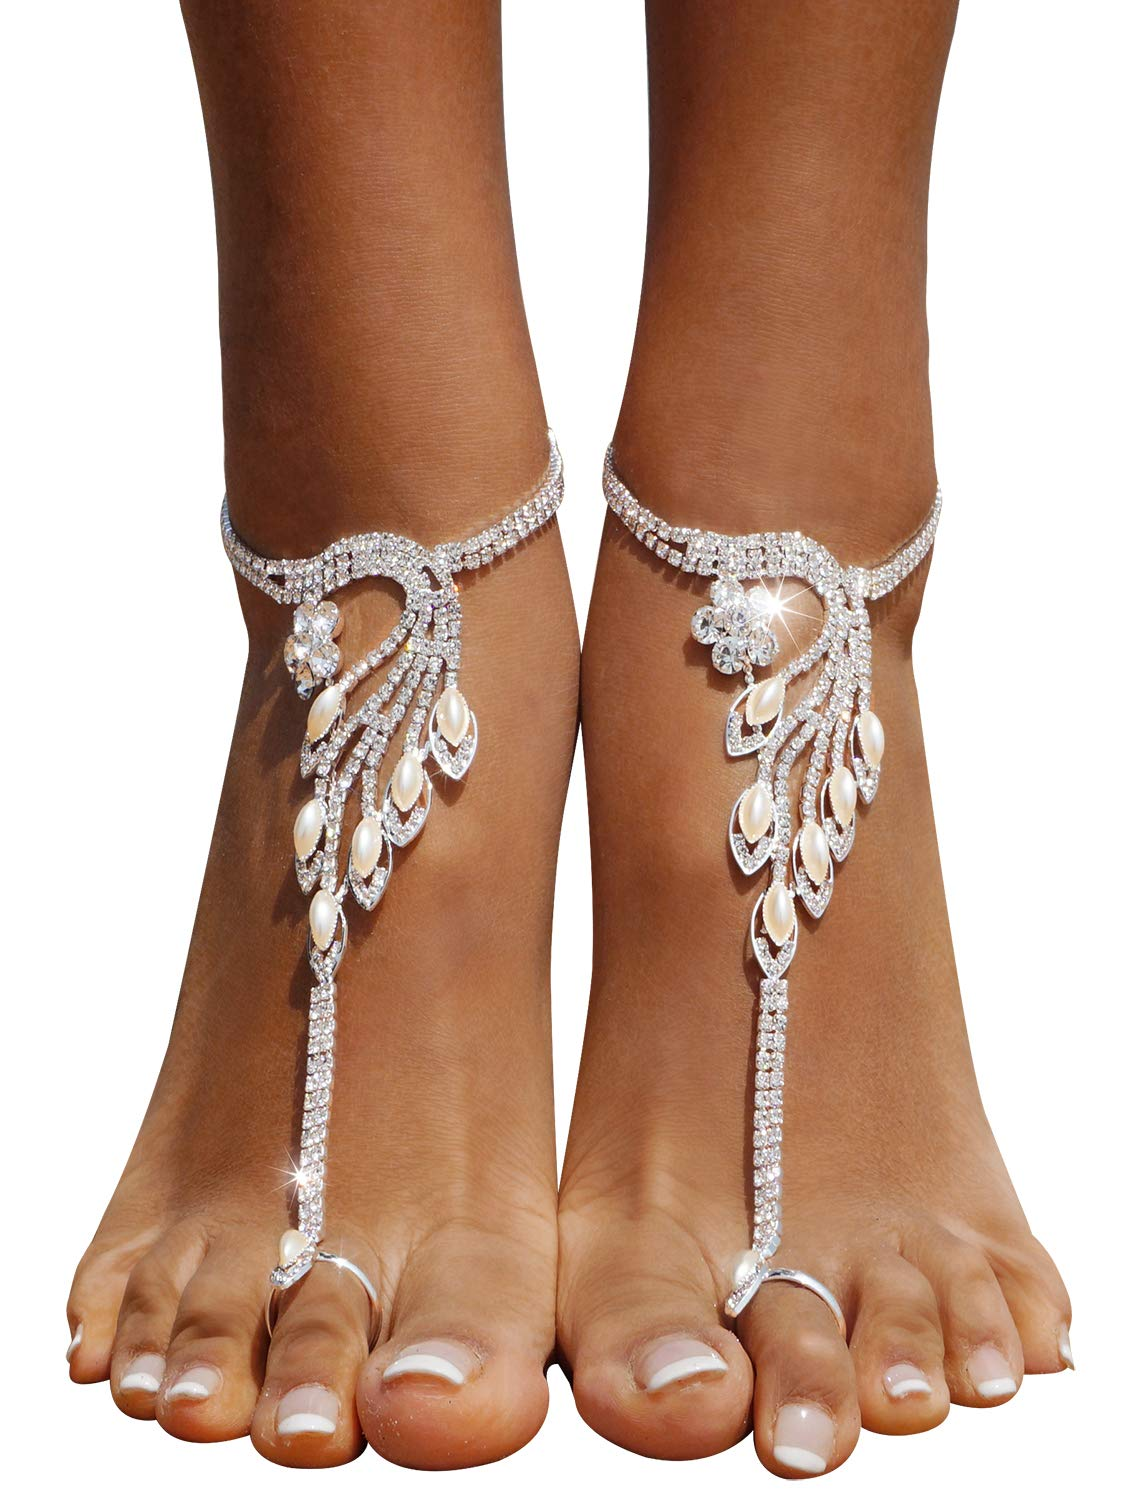 2 Pieces Women's Foot Chain Barefoot Sandals Beach Wedding Jewelry Anklet with Rhinestone Toe Ring Gold Bellady ZXG18030002